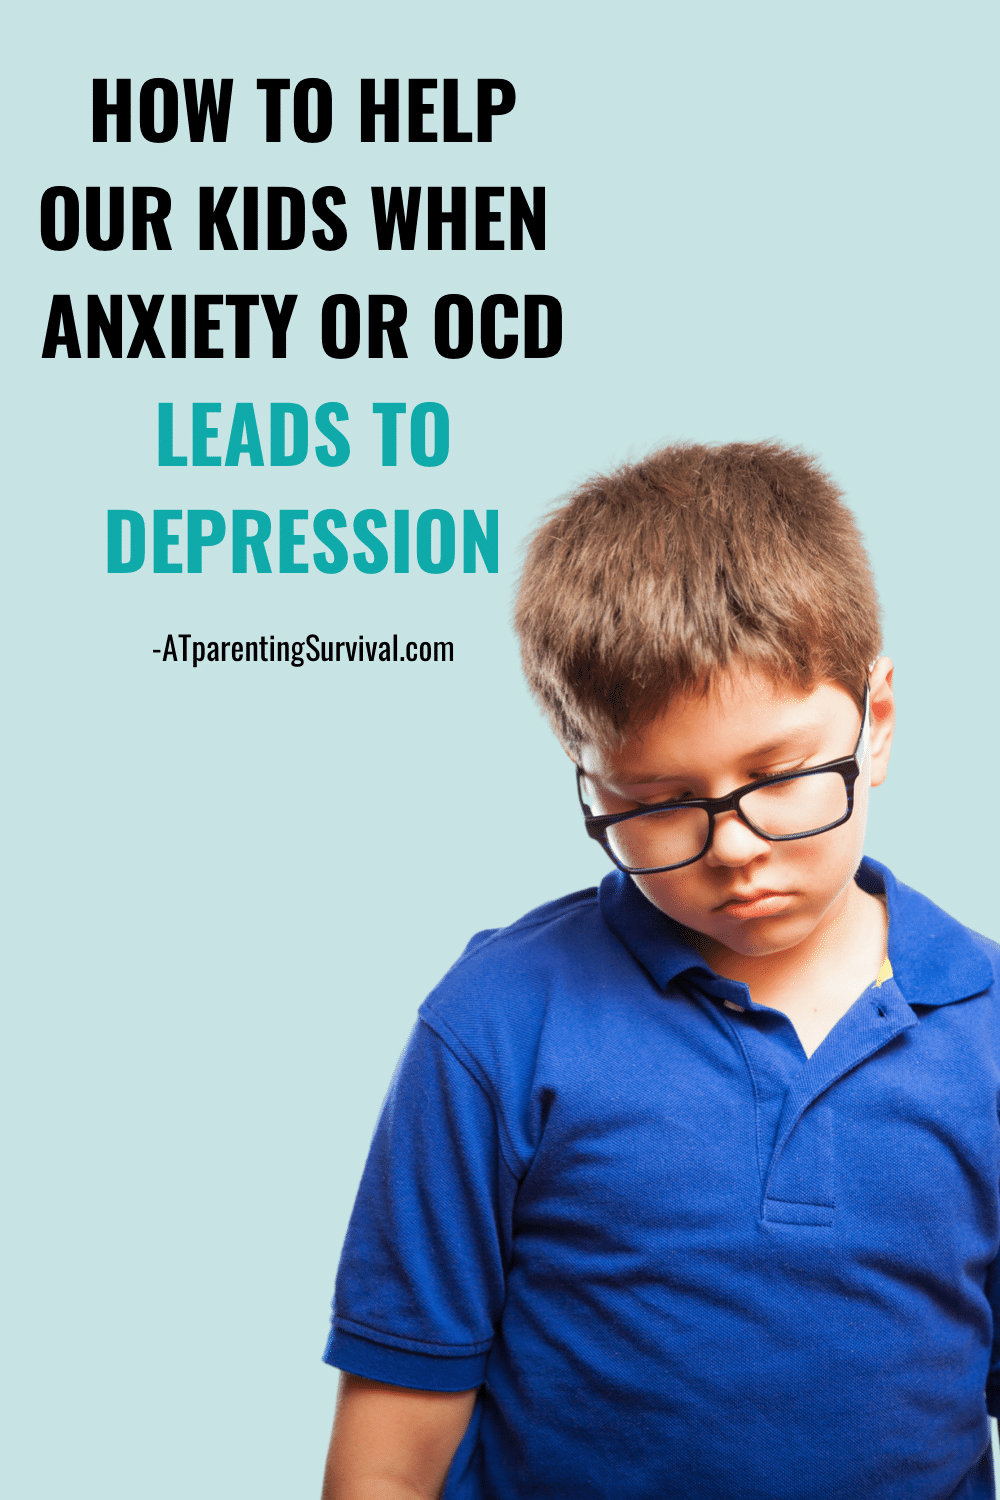 How to Help Our Kids when Anxiety and OCD Lead to Depression